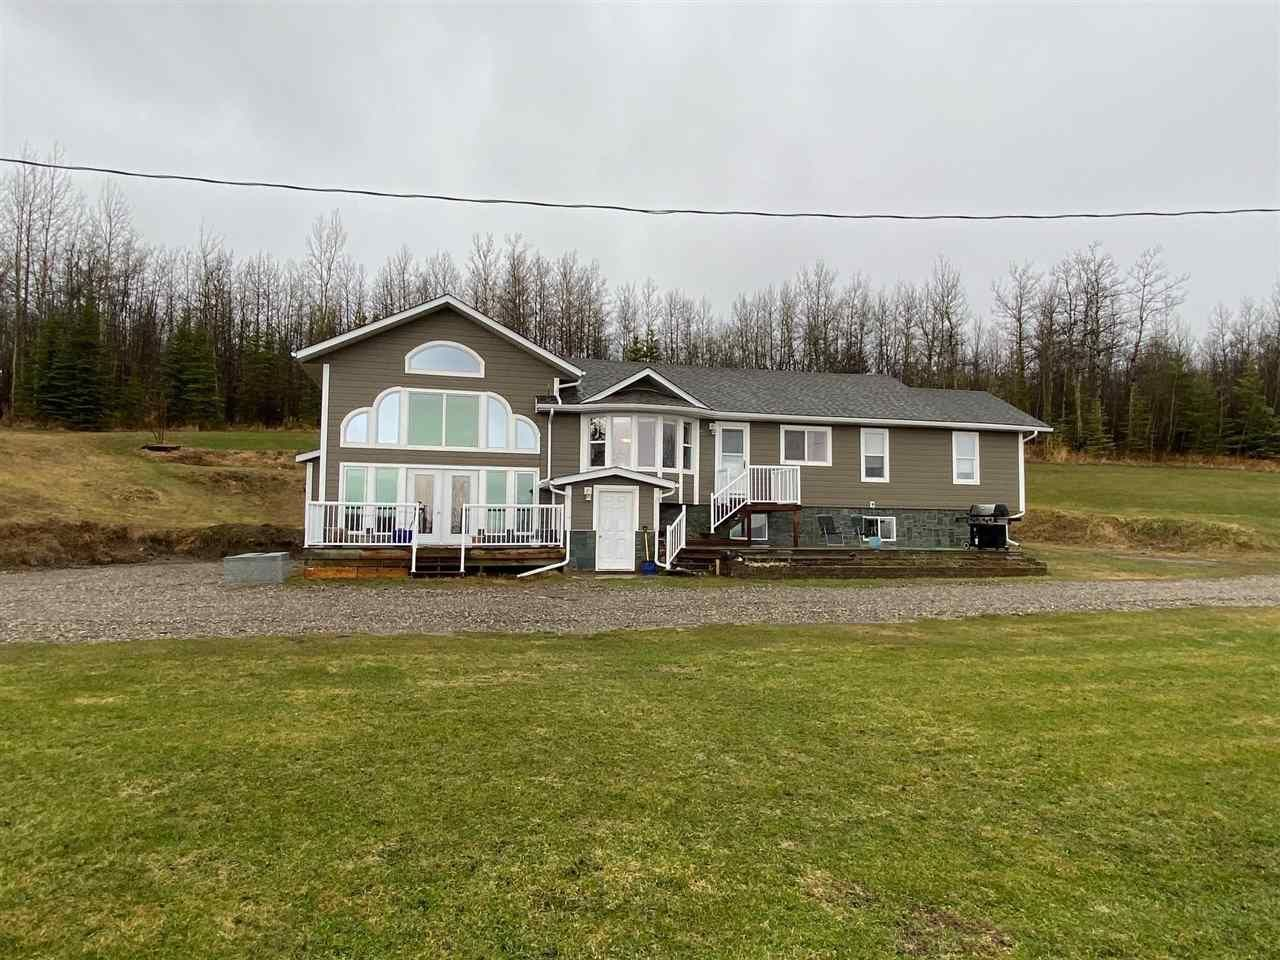 Main Photo: 14288 N 29 Highway: Charlie Lake House for sale (Fort St. John (Zone 60))  : MLS®# R2575258